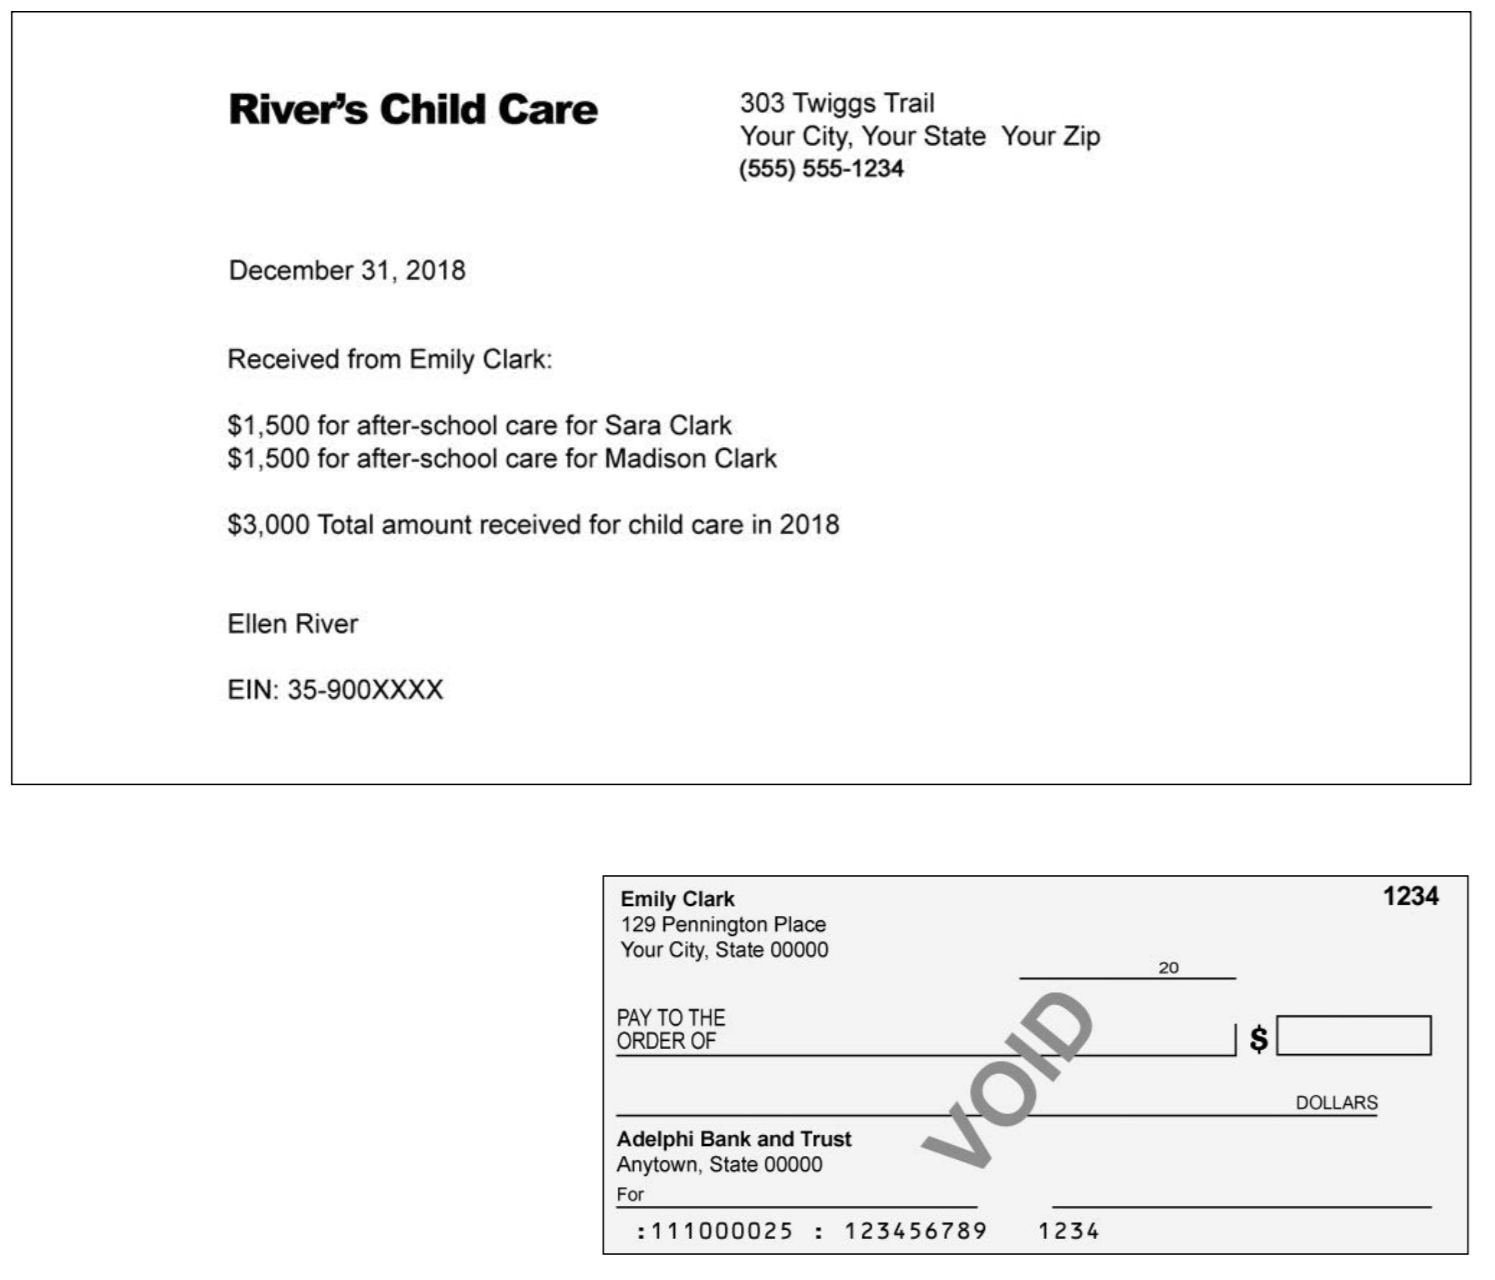 303 Twiggs Trail Your City, Your State Your Zip (555) 555-1234 Rivers Child Care December 31, 201 Received from Emily Clark $1,500 for after-school care for Sara Clark $1,500 for after-school care for Madison Clark $3,000 Total amount received for child care in 2018 Ellen River EIN: 35-900XXXX 1234 Emily Clark 129 Pennington Place Your City, State 00000 20 PAY TO THE ORDER OF DOLLARS Adelphi Bank and Trust Anytown, State 00000 For : 111000025 123456789 1234